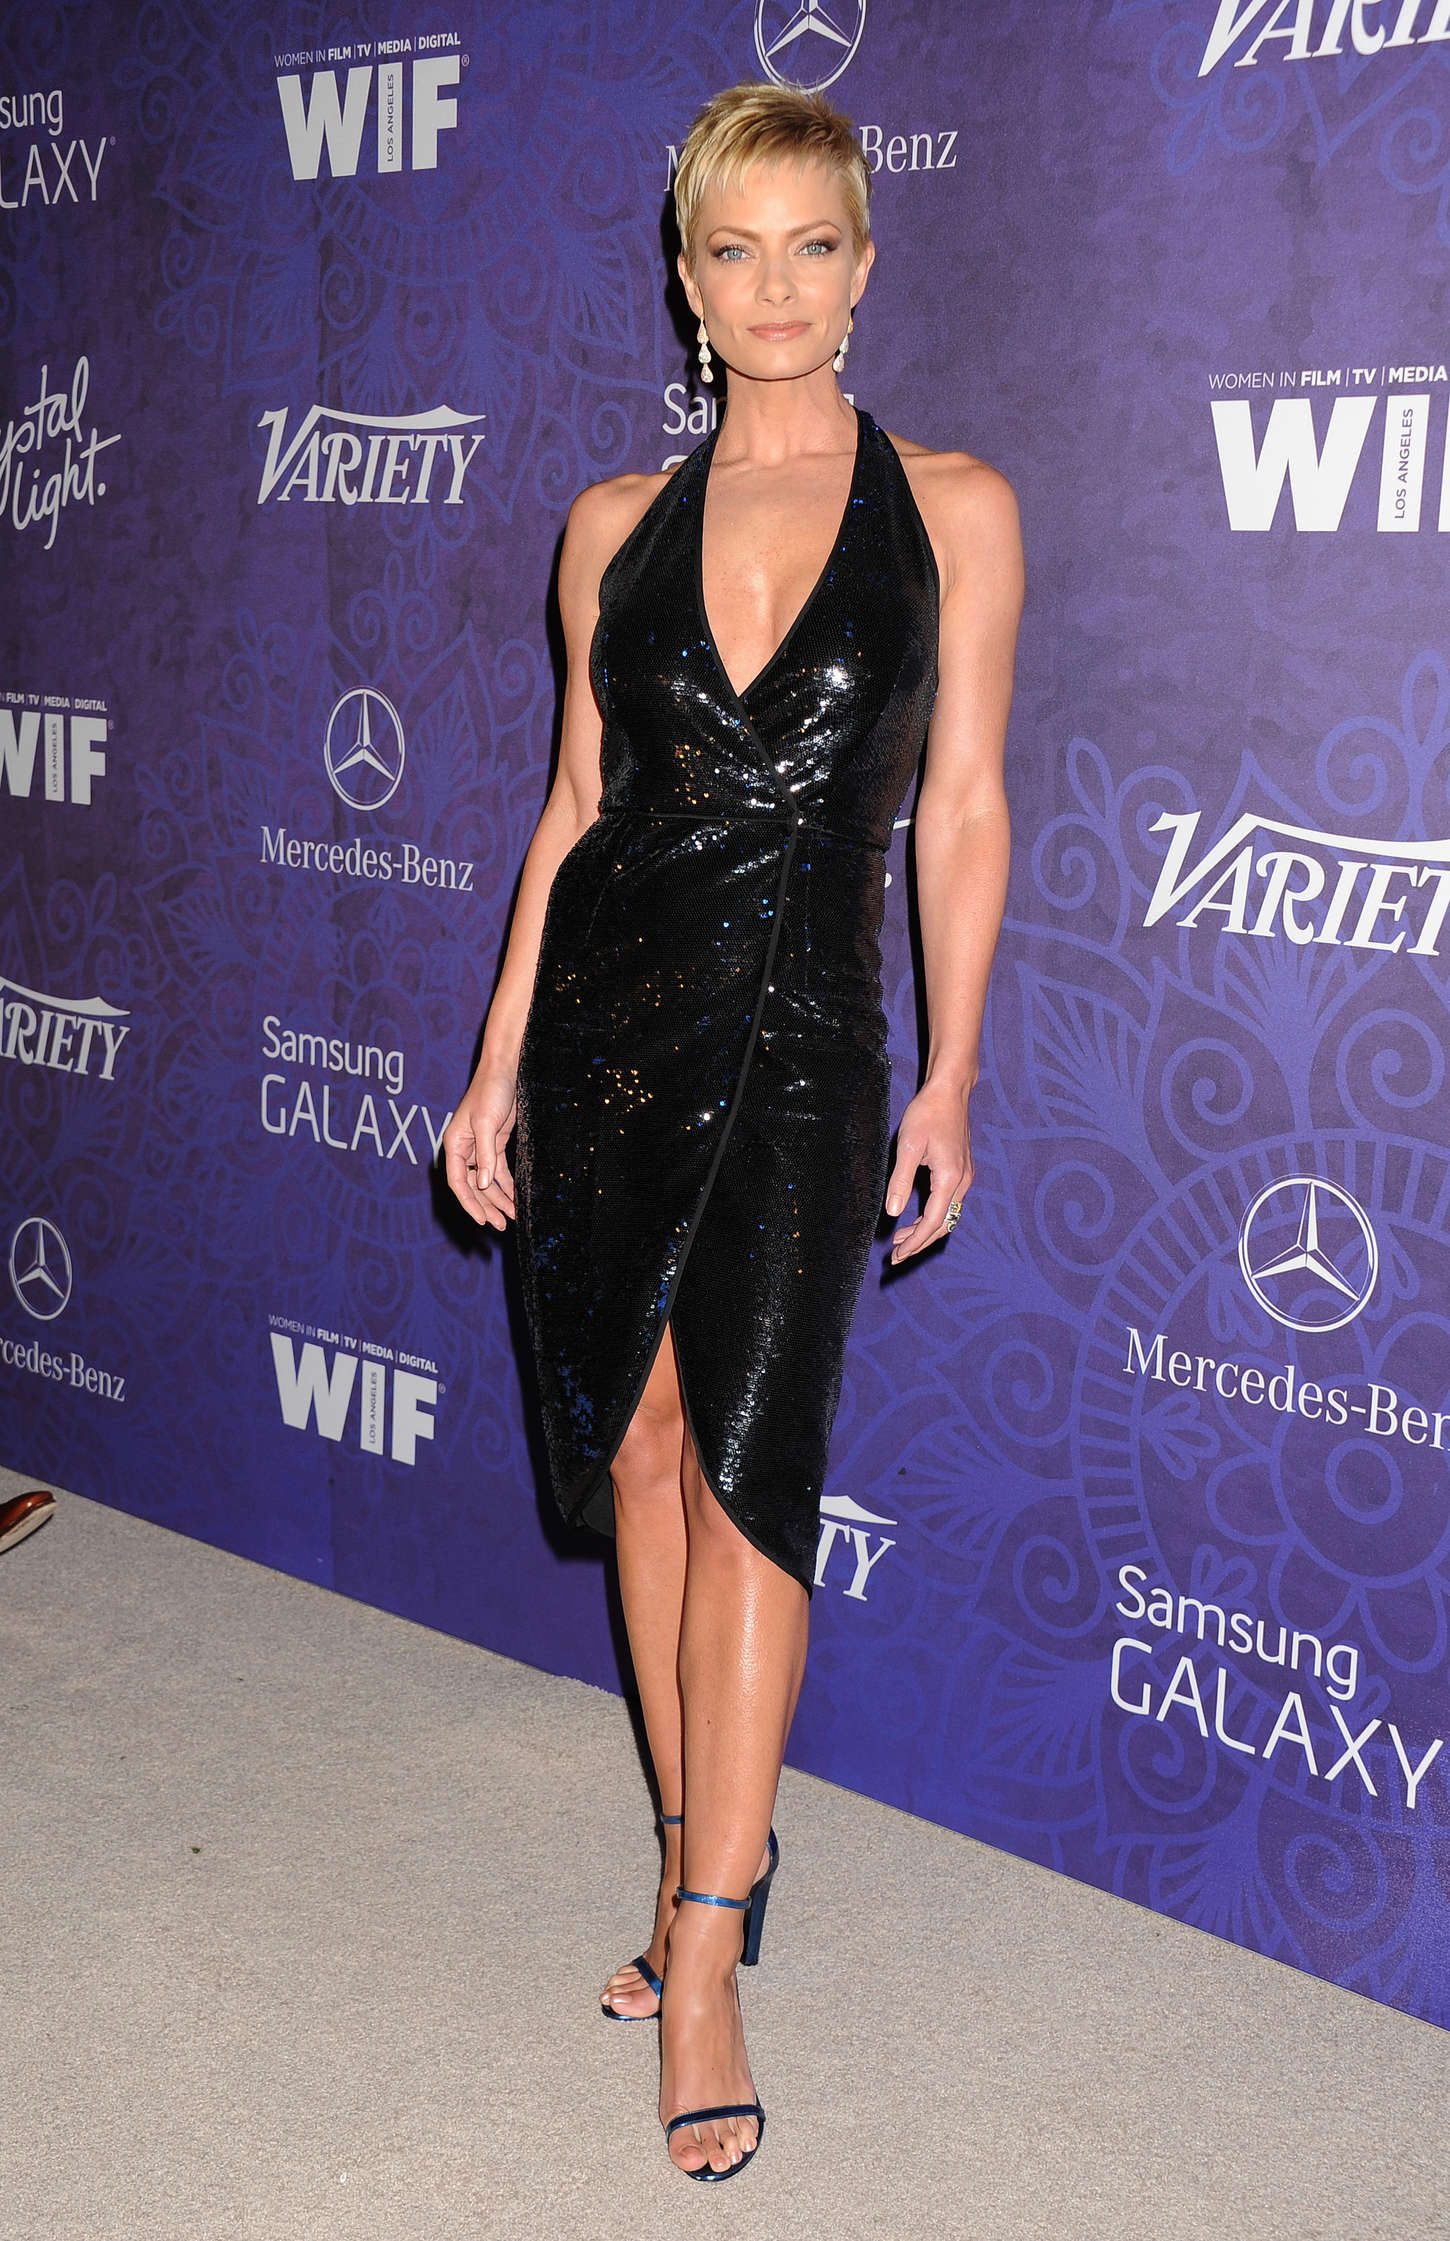 Jaime Pressly Variety and Women in Film Emmy Nominee Celebration in West Hollywood